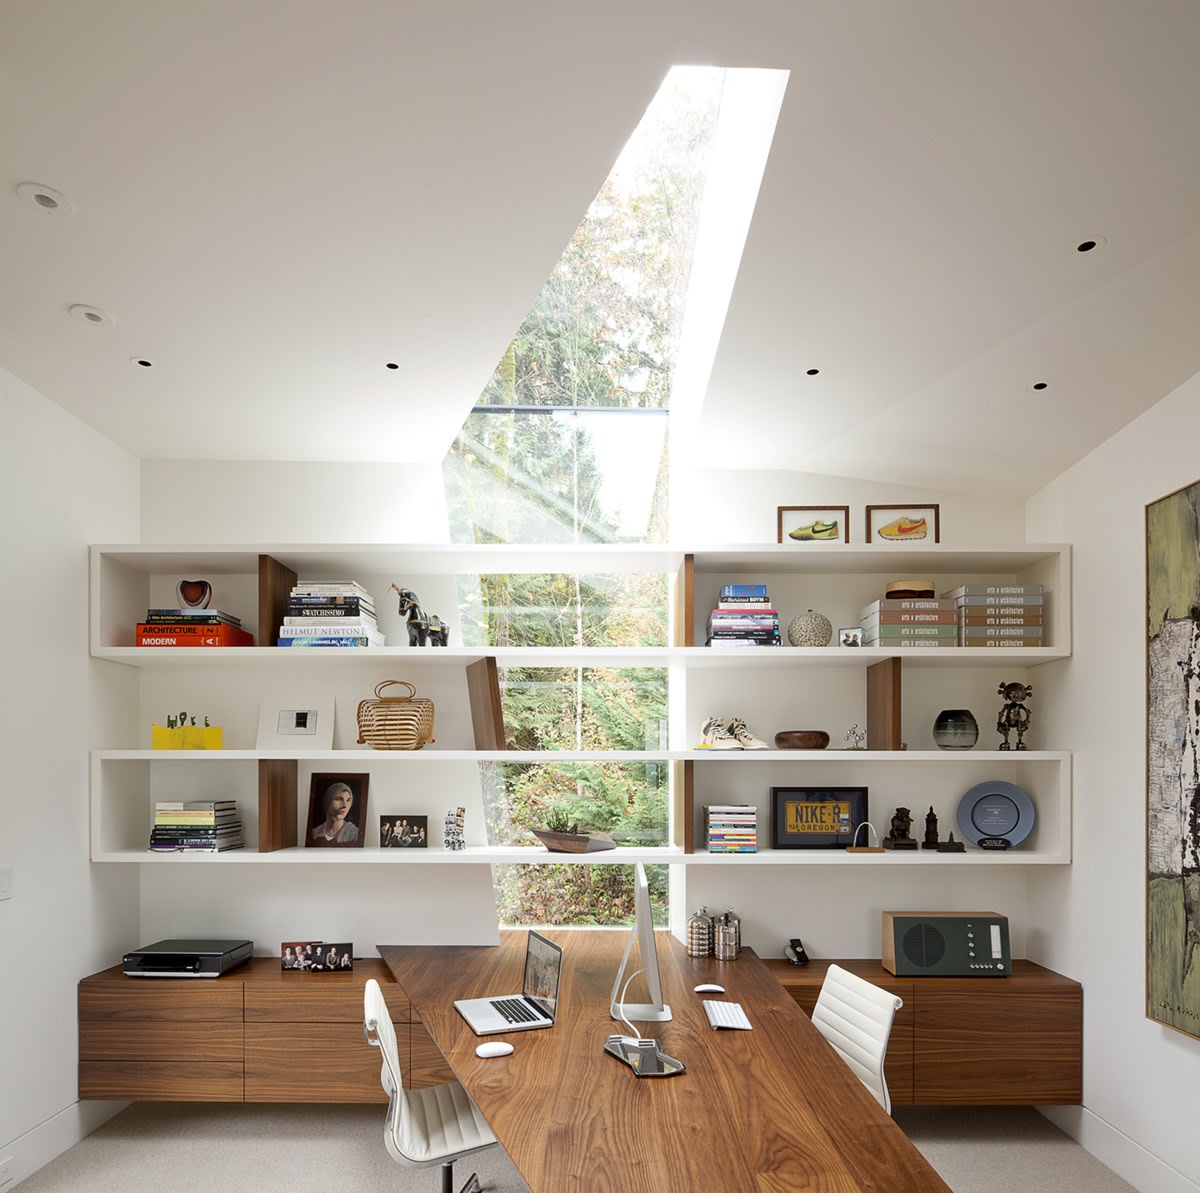 A separate home office | Source: home-designing.com